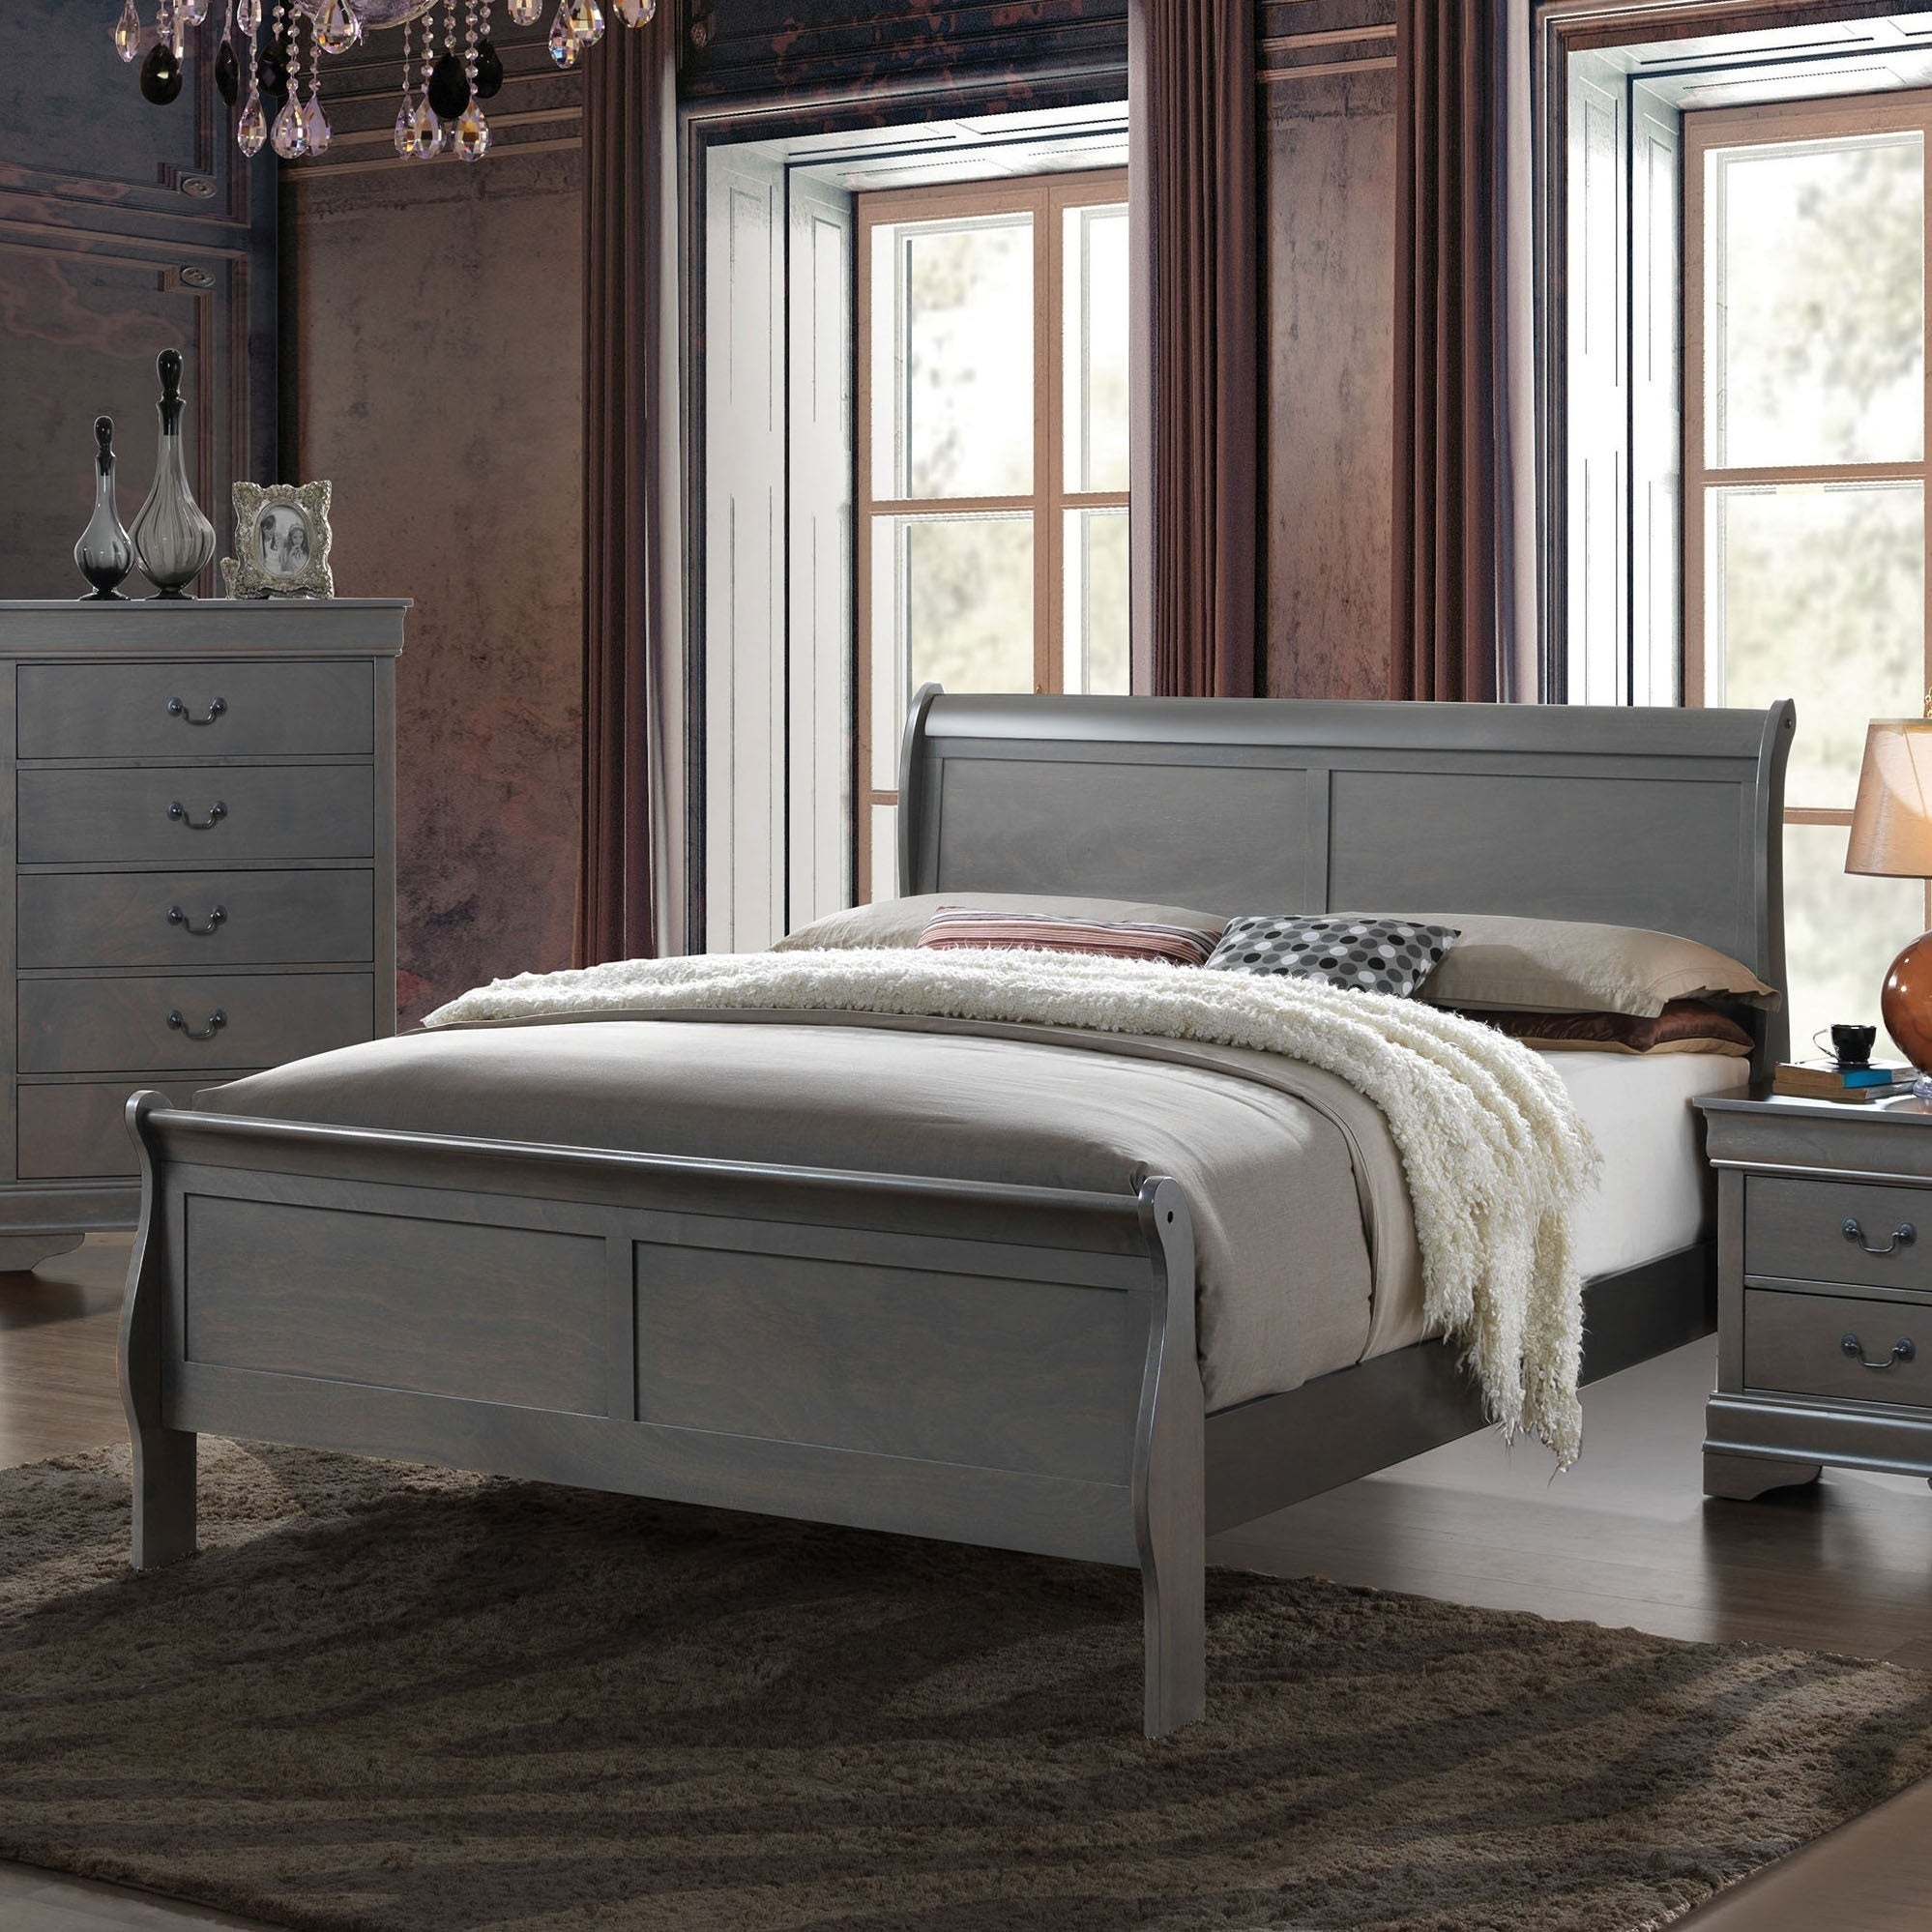 width bayfield threshold king trim aspenhome with dk height item adjustable size sleigh products slats bed b bayfieldking beds